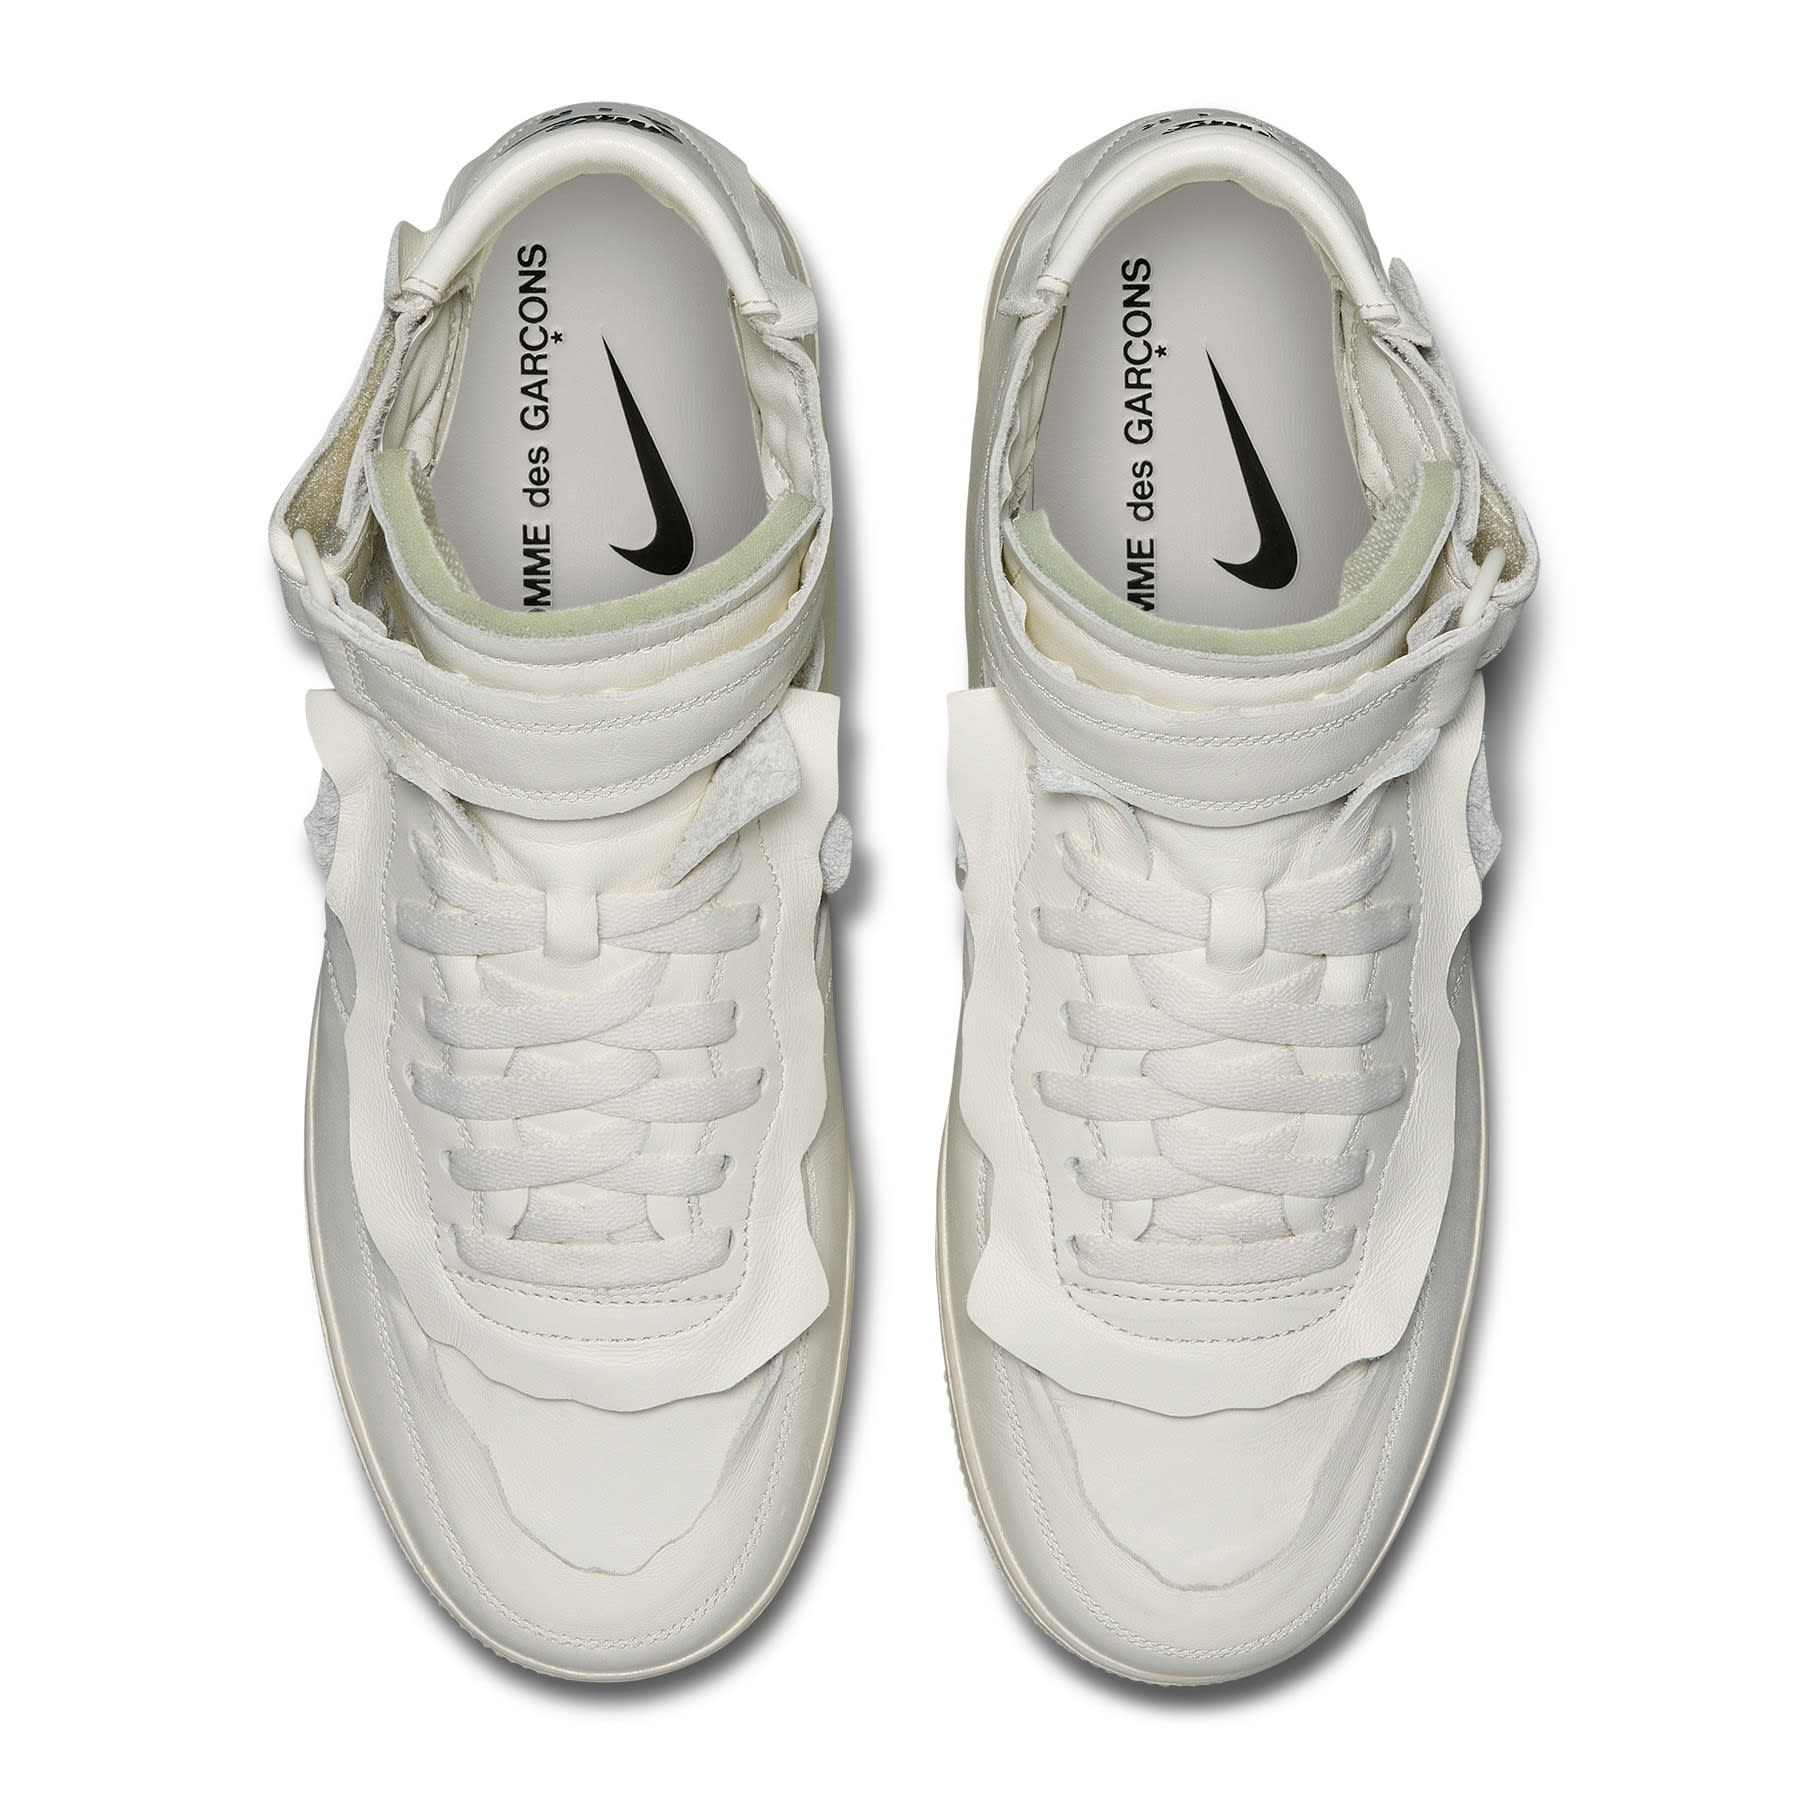 Comme Des Garcons x Nike Air Force 1 Mid 'White' F/W 20 Top